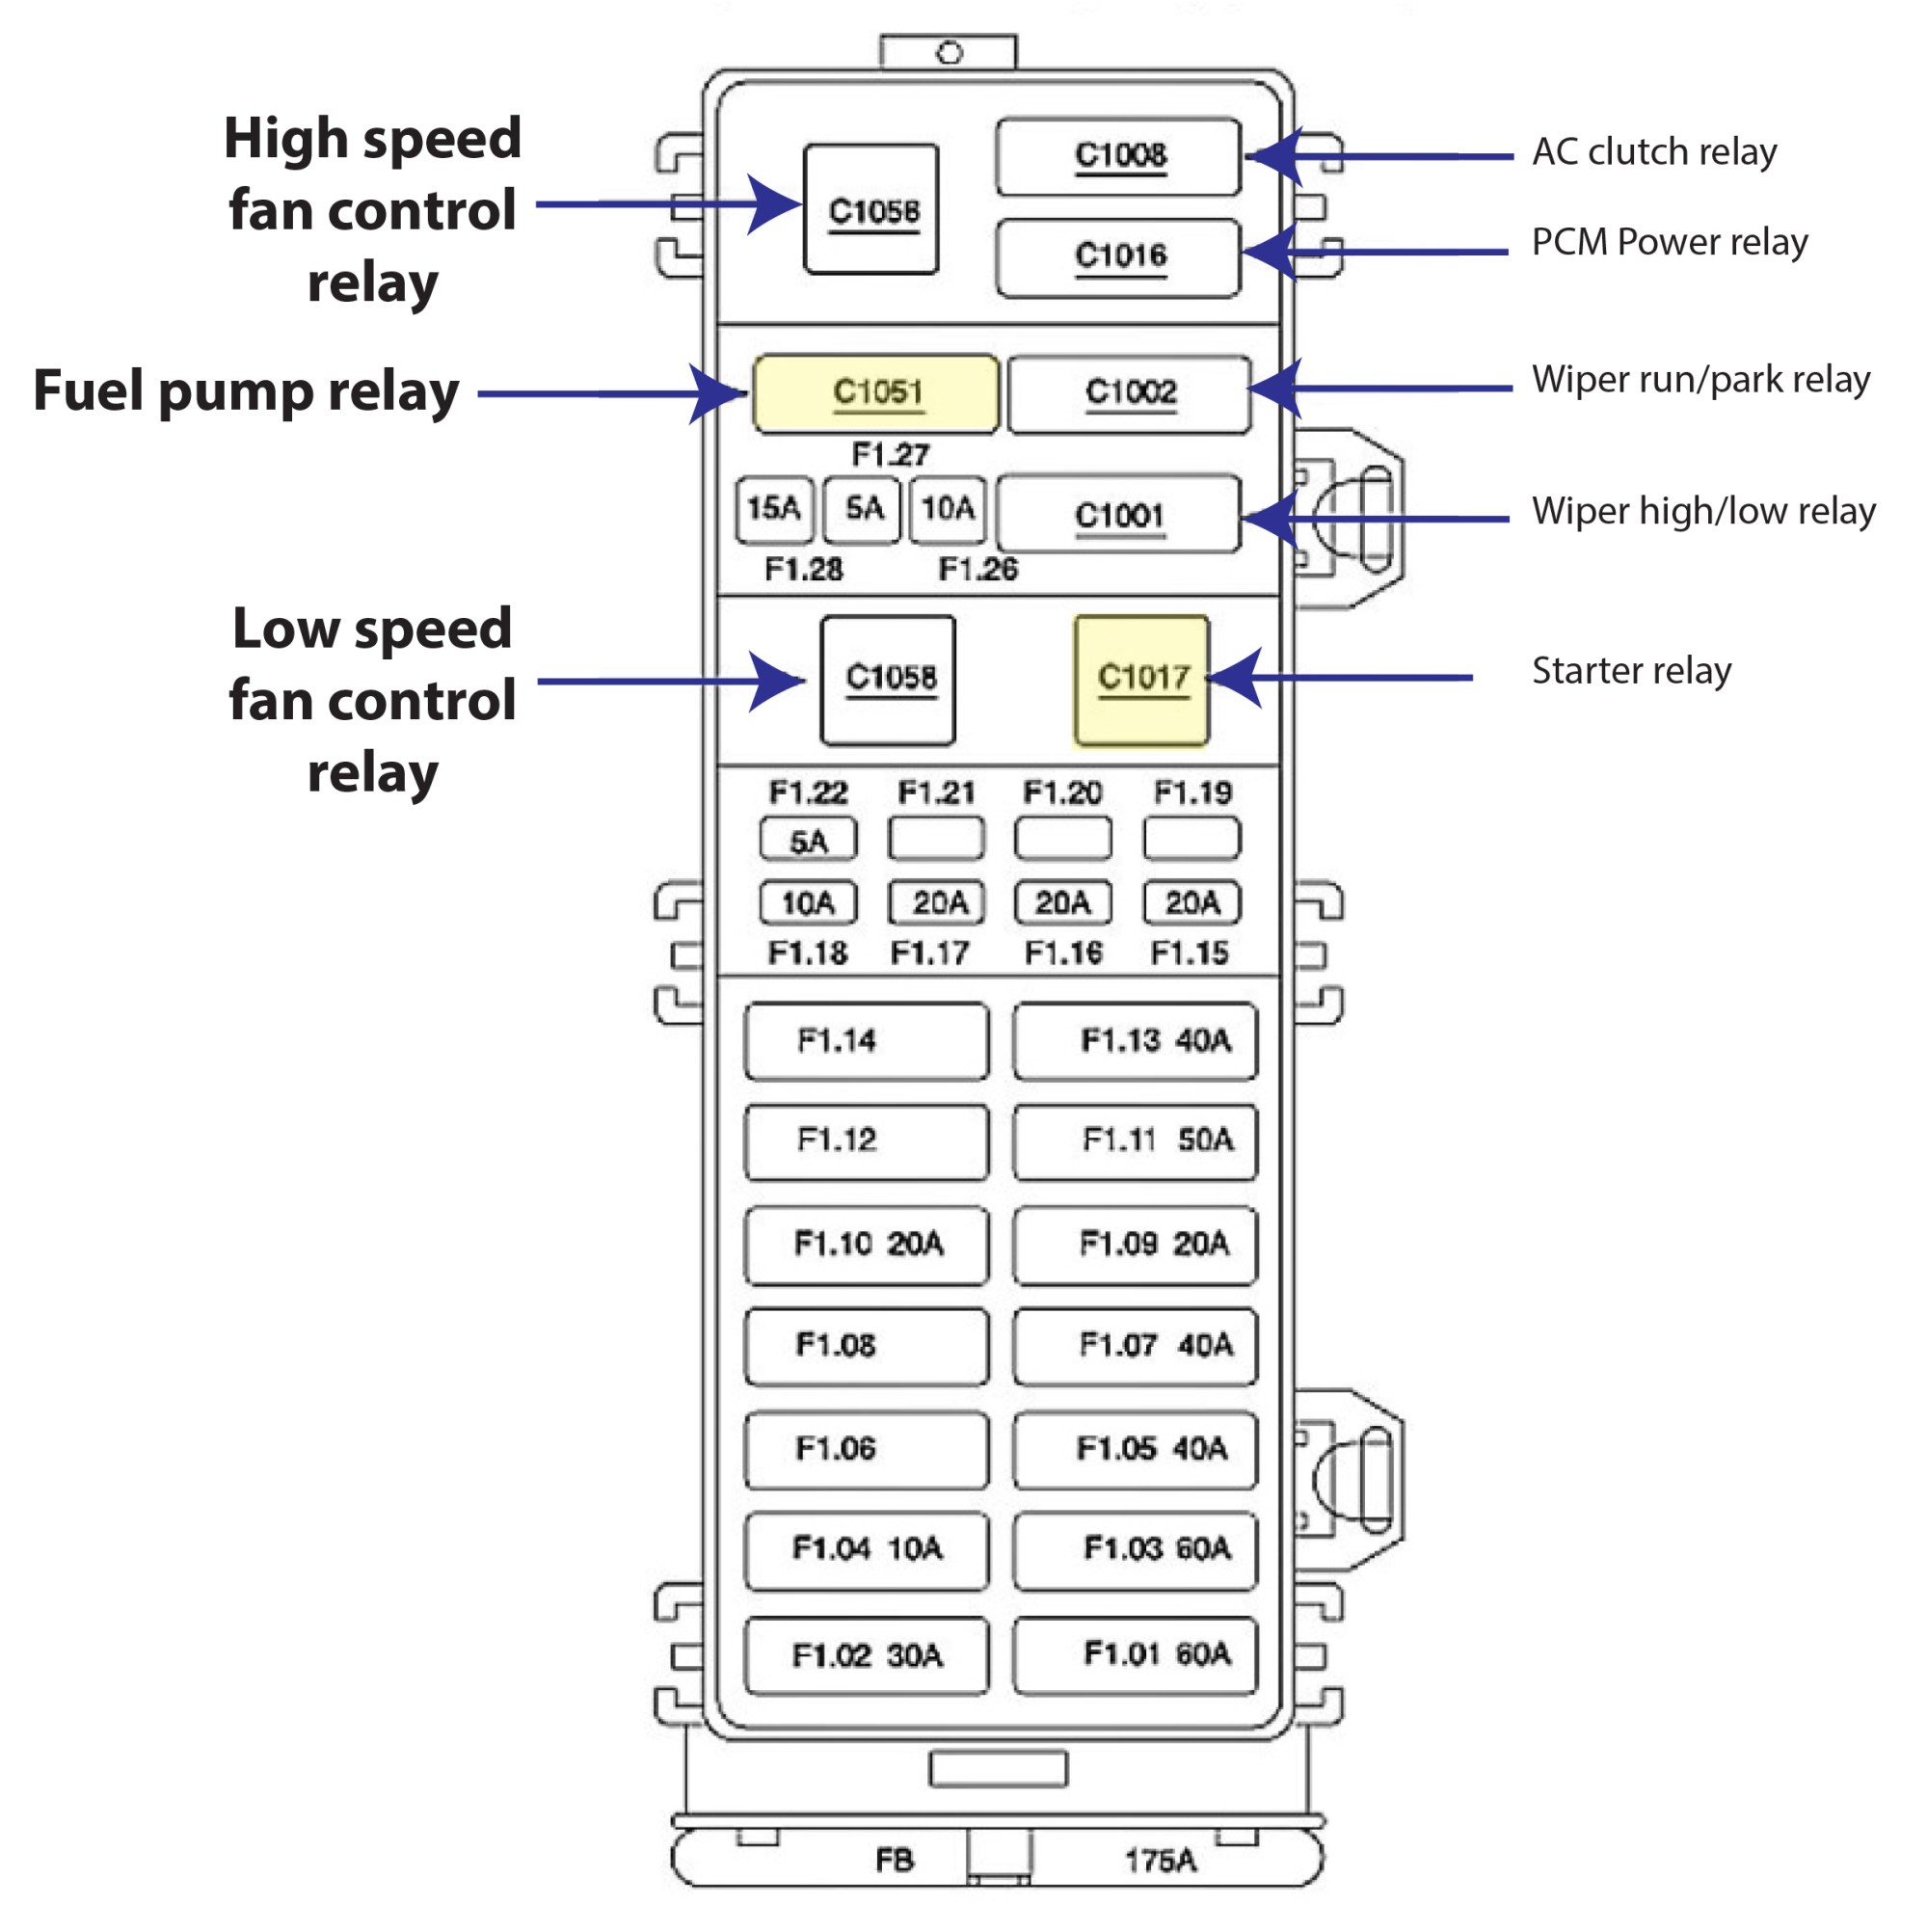 hight resolution of 2001 ford taurus fuse box manual wiring diagram schematic 1989 ford taurus fuse box